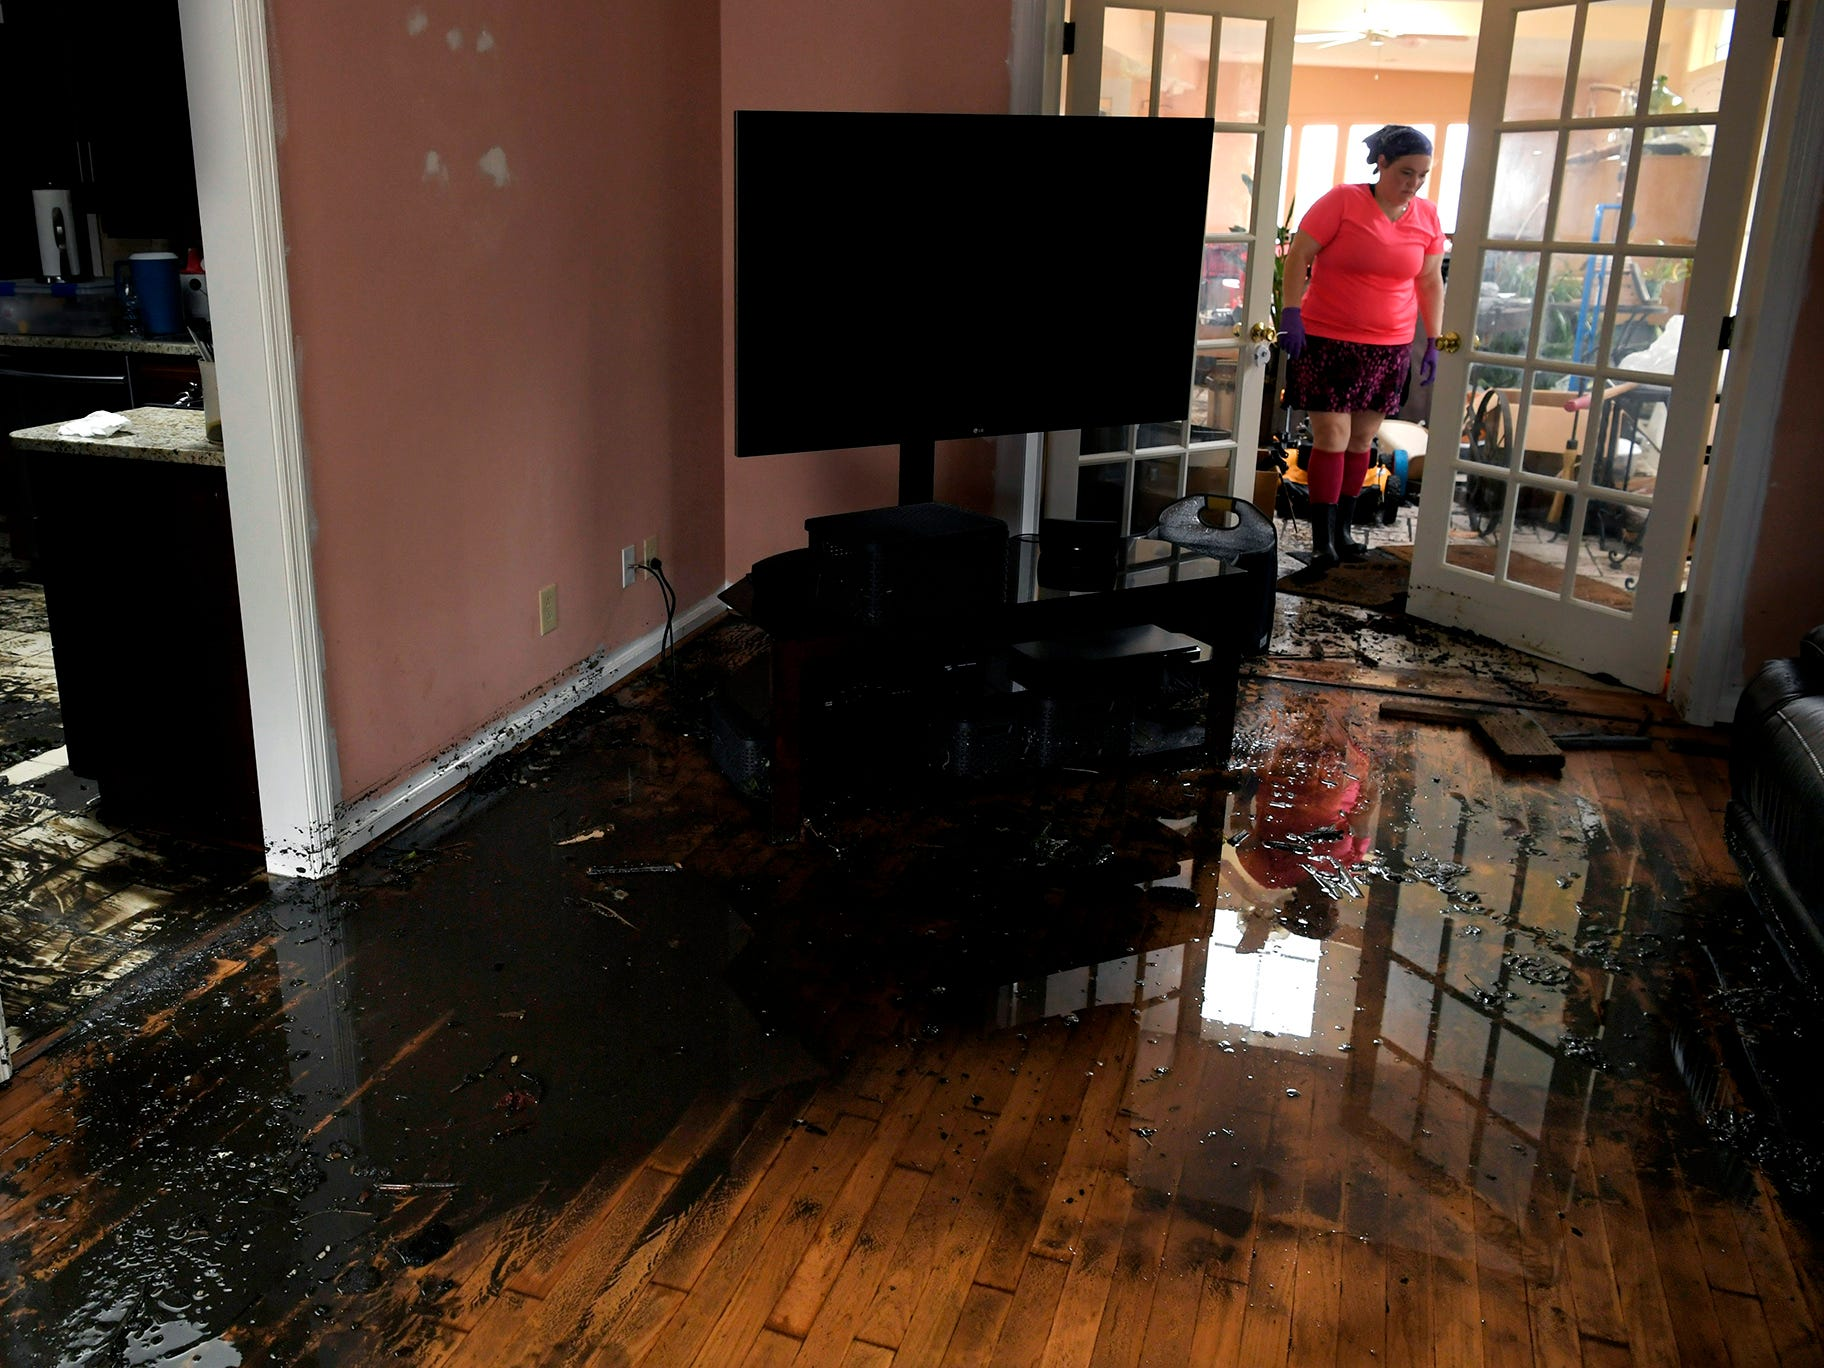 New Bern, N.C., resident Cynthia Downes walks through her flooded home on Sunday, Sept. 16, 2018, following Hurricane Florence.